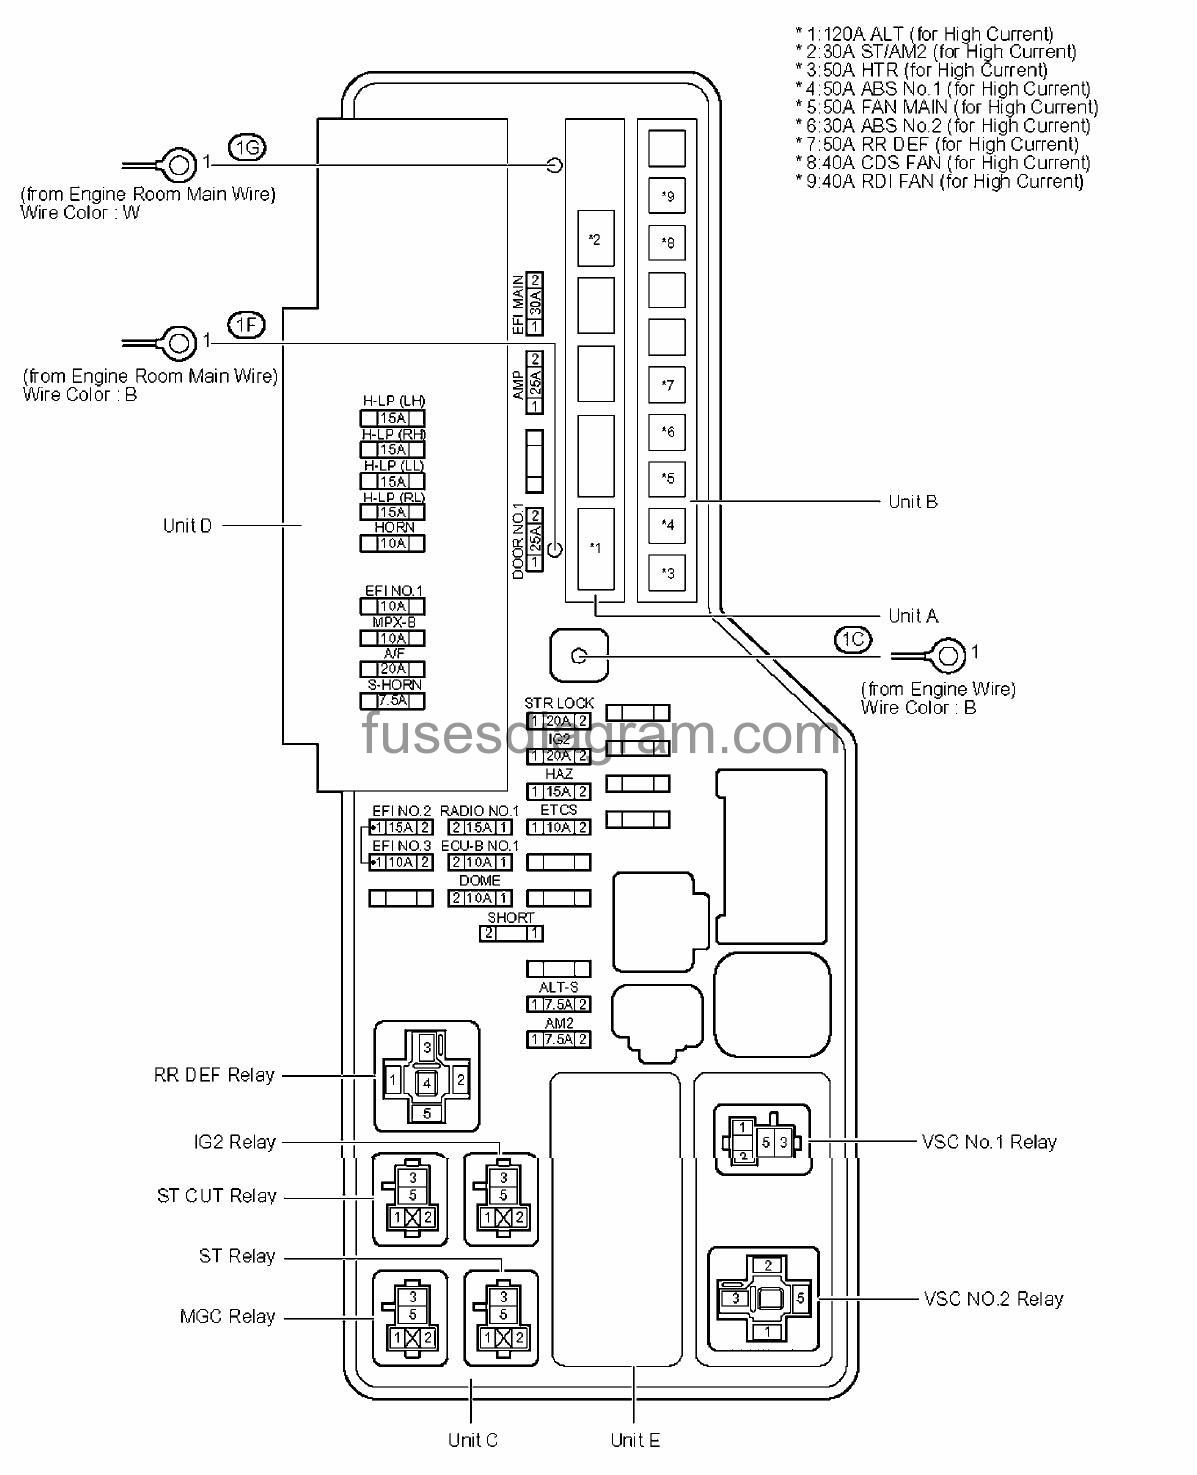 2002 Toyota Avalon Fuse Box Diagram List Of Schematic Circuit Wiring Harness Just Data Rh Ag Skiphire Co Uk